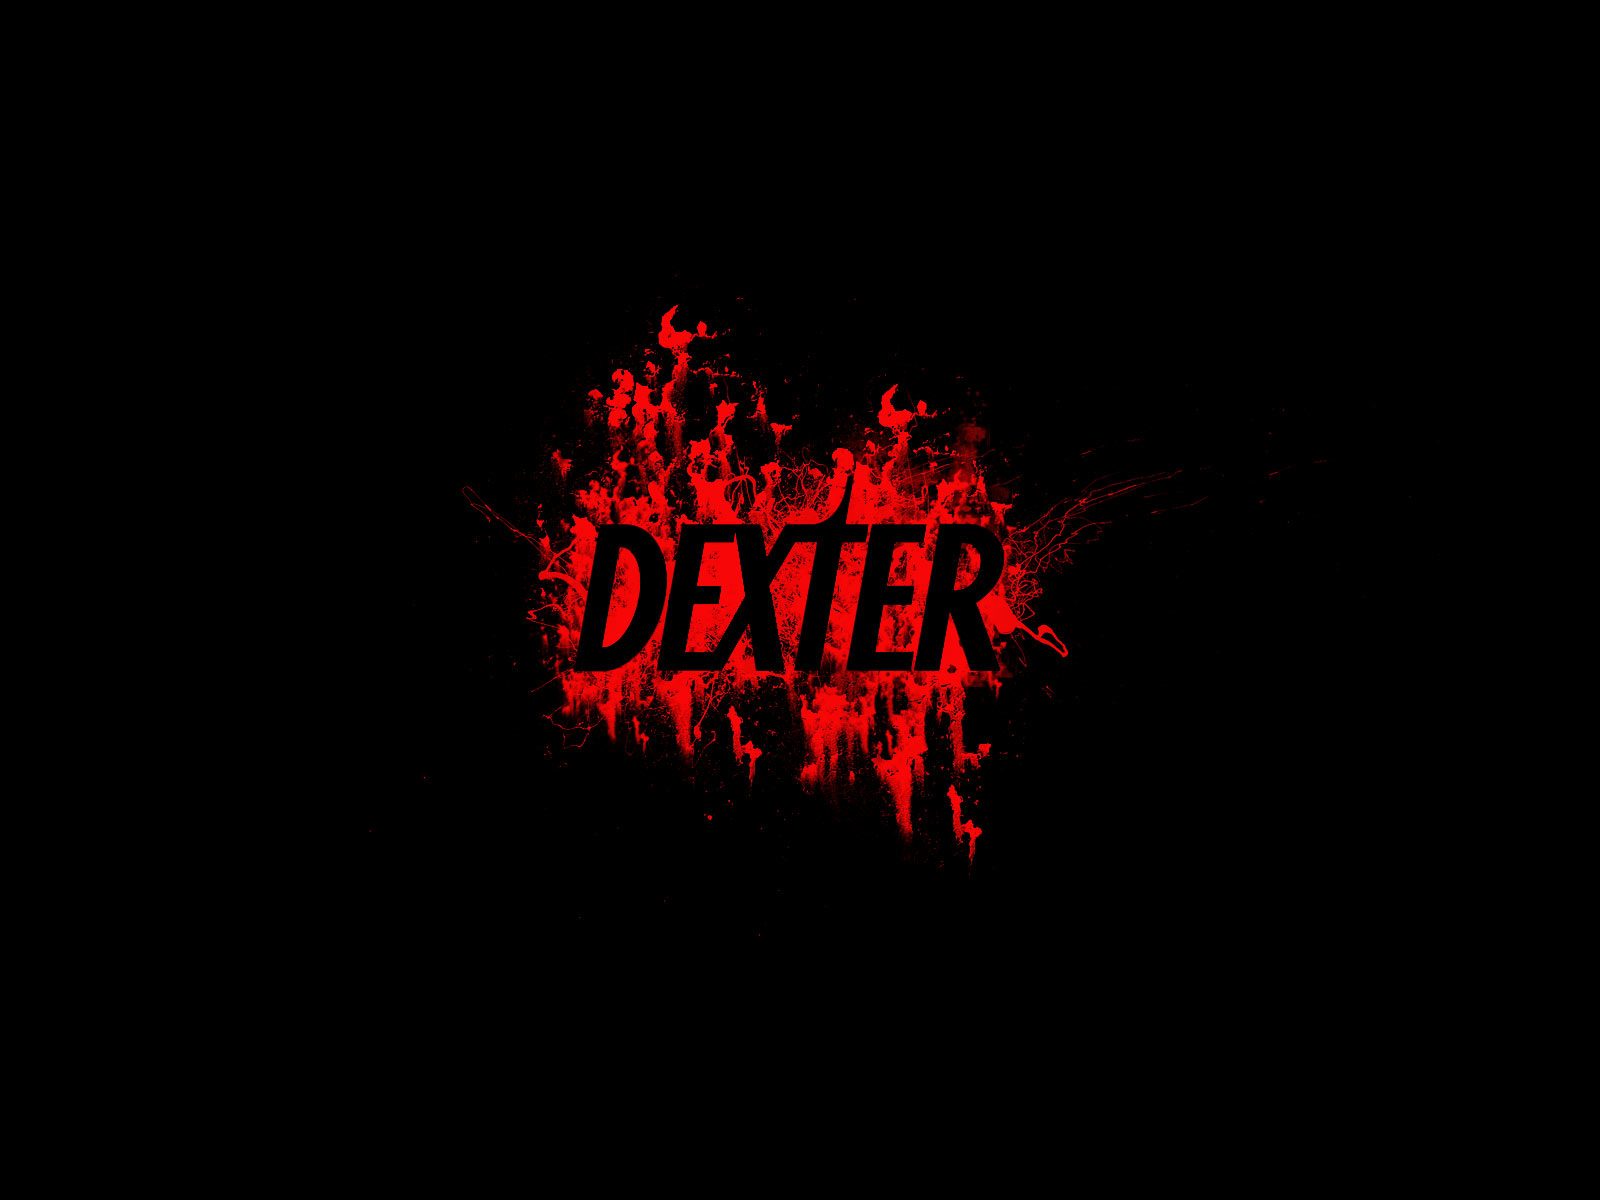 Free Dexter Wallpaper